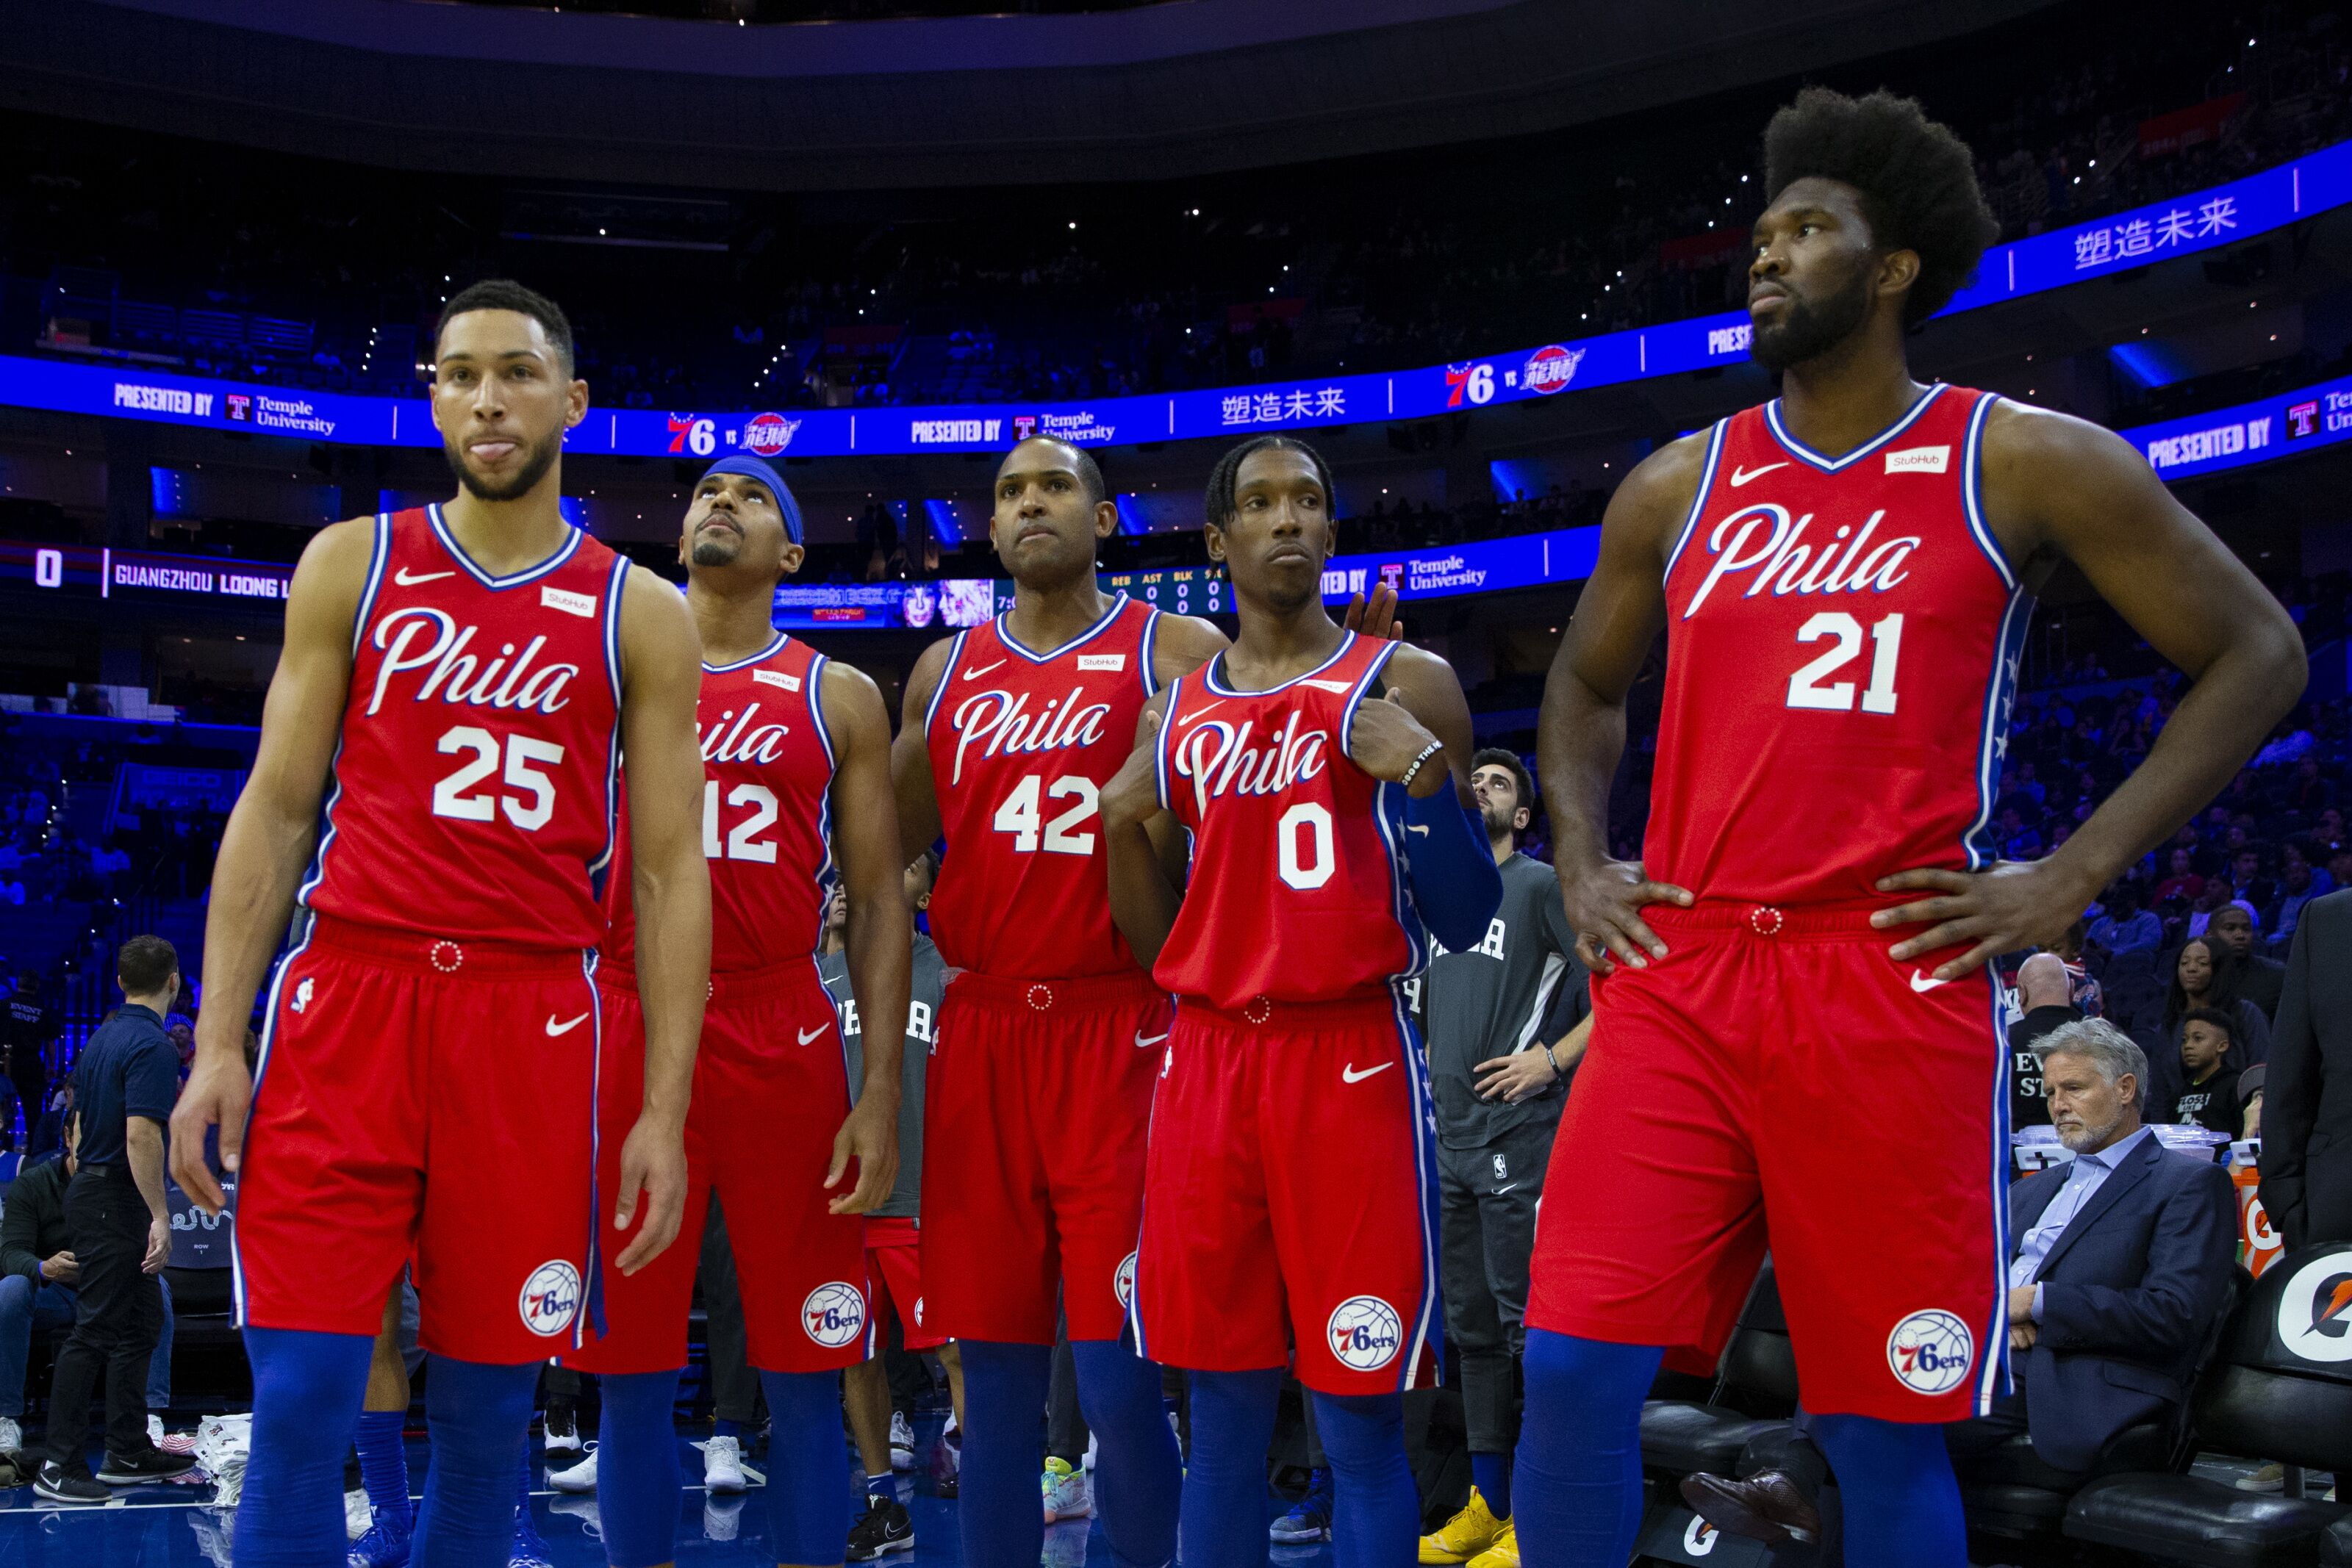 Philadelphia 76ers top ESPN's League Pass rankings for second straight year